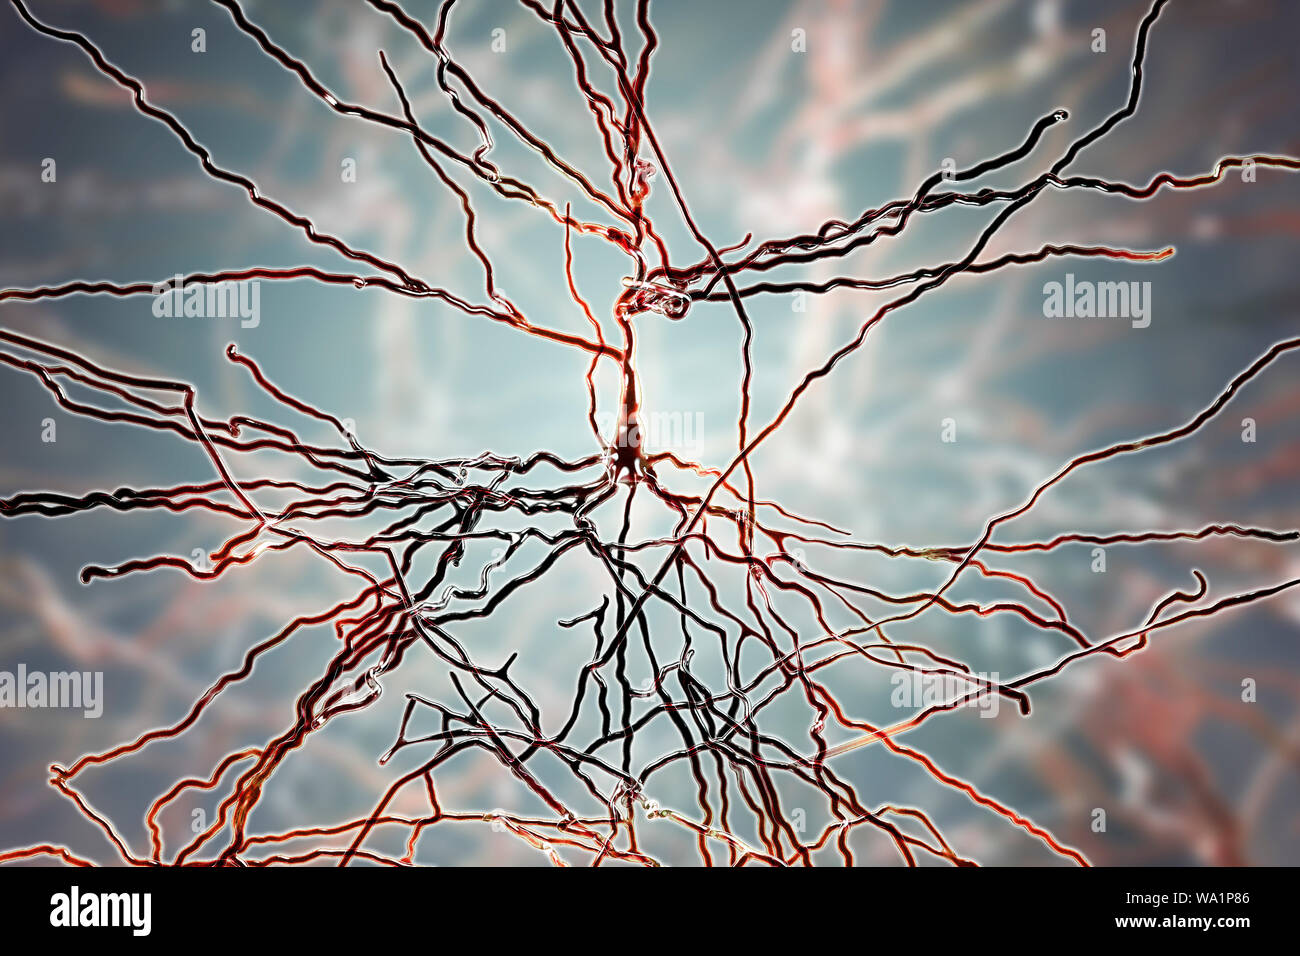 Pyramidal neurons. Illustration of pyramidal nerve cells from the cerebral cortex of the brain. Pyramidal cells are so named for their triangular cell bodies. Each cell body has numerous processes (dendrites) that collect and transmit information from other nerve cells and sensory cells. Each cell body also has an axon leading from it, through which it passes information to other cells. Stock Photo